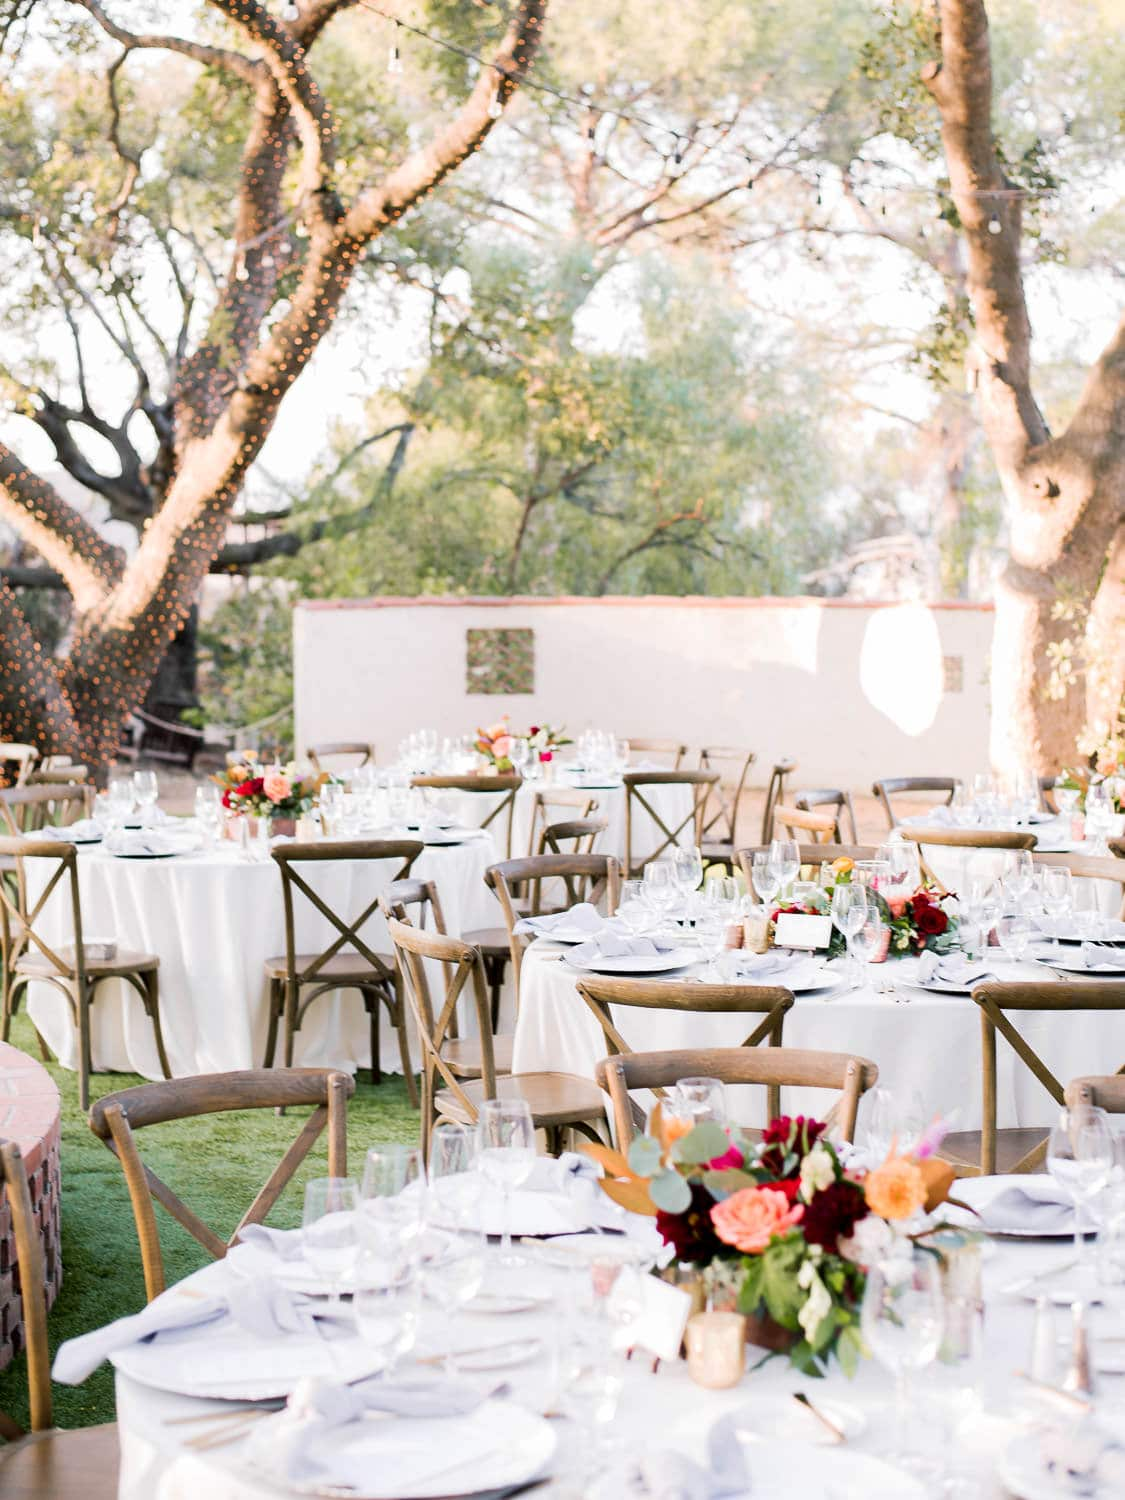 Wedding-Reception-Design-Inspiration-Greg-Ross